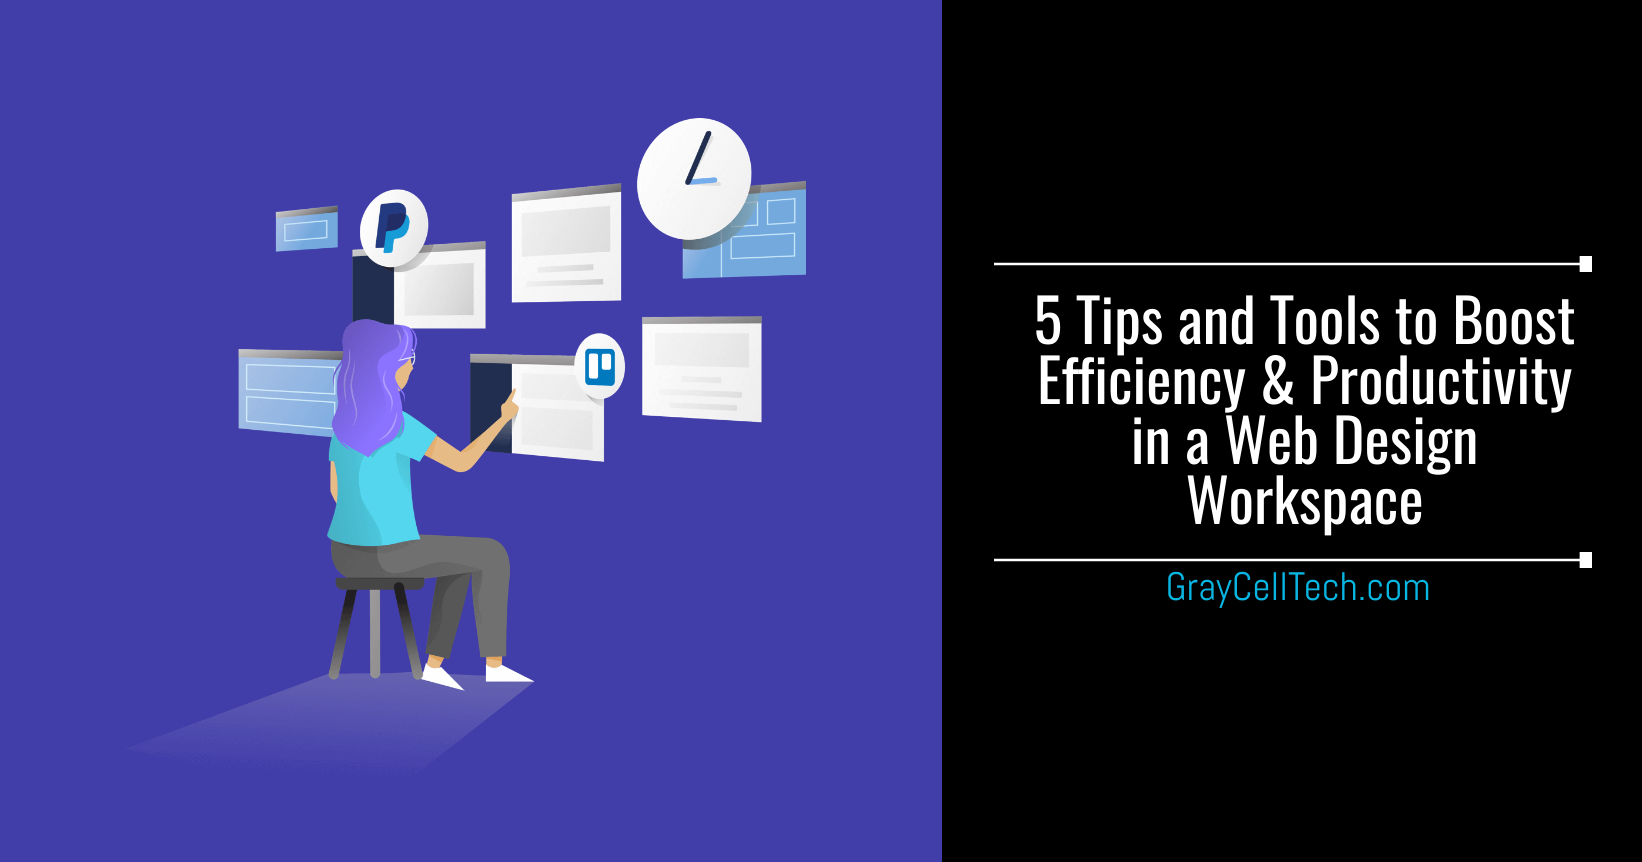 Tips and Tools to Boost Efficiency and Productivity in a Web Design and Development Workspace